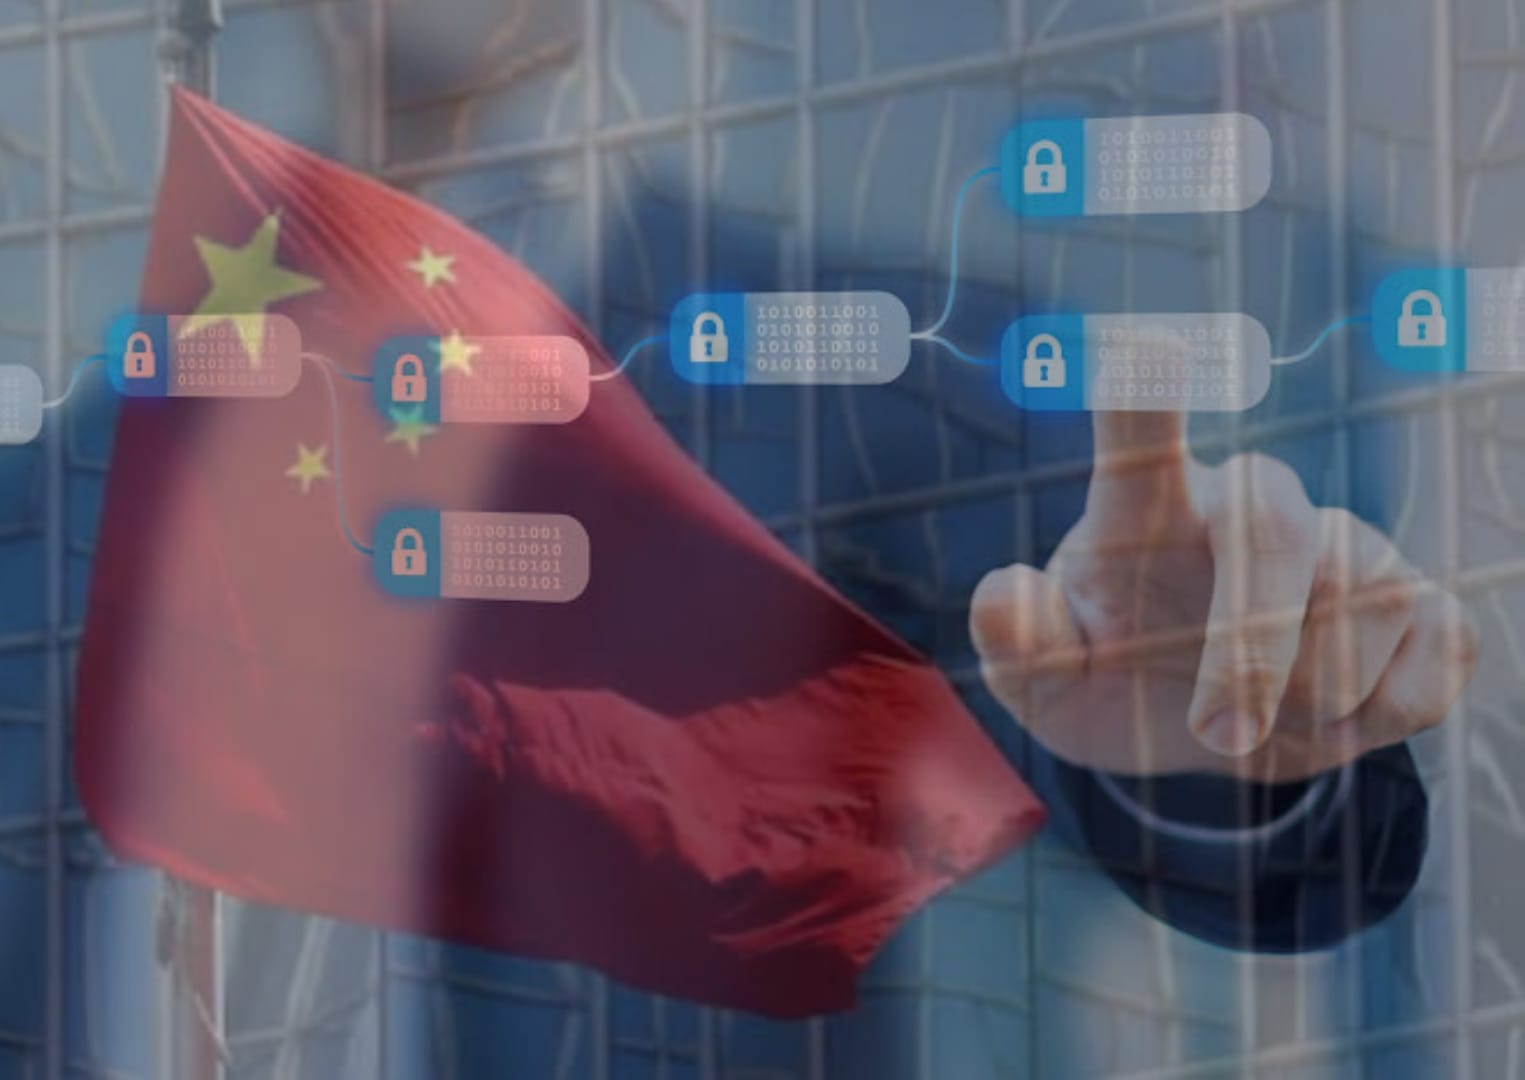 In Points: China's passes one of the world's strictest online privacy laws